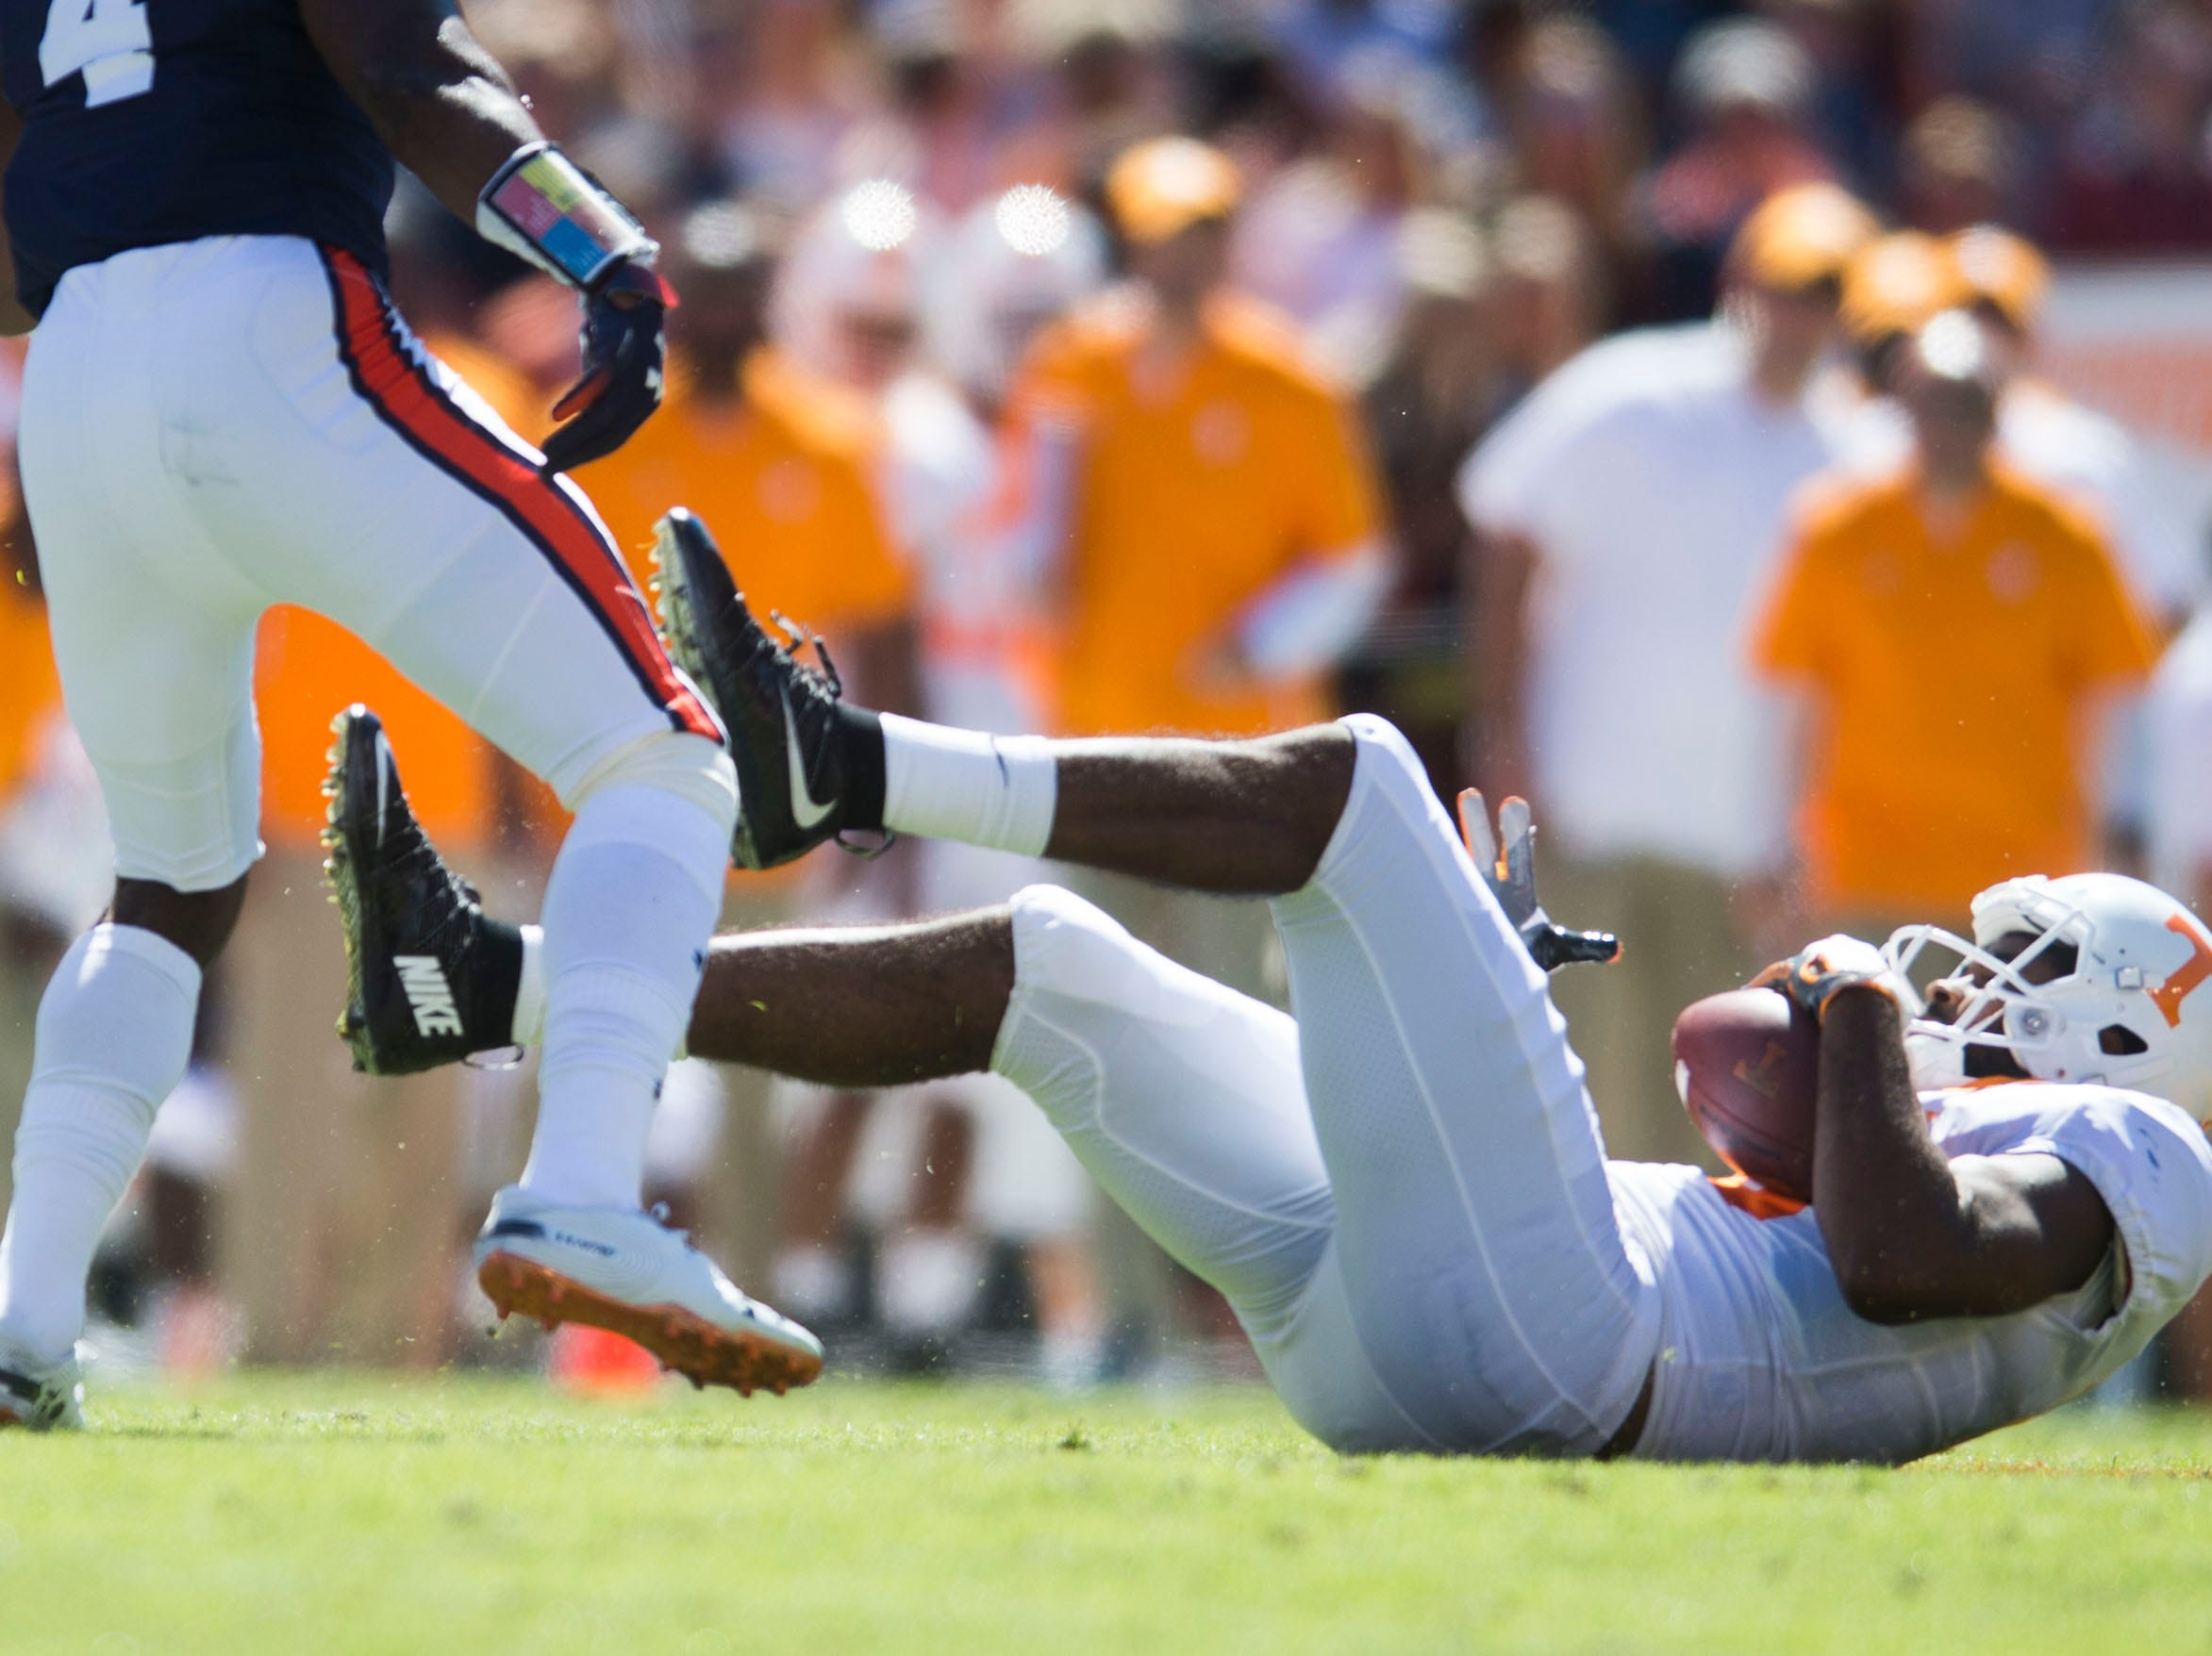 Tennessee wide receiver Jauan Jennings (15) falls with the ball during a game between Tennessee and Auburn at Jordan-Hare Stadium in Auburn, Ala. Saturday, Oct. 13, 2018.